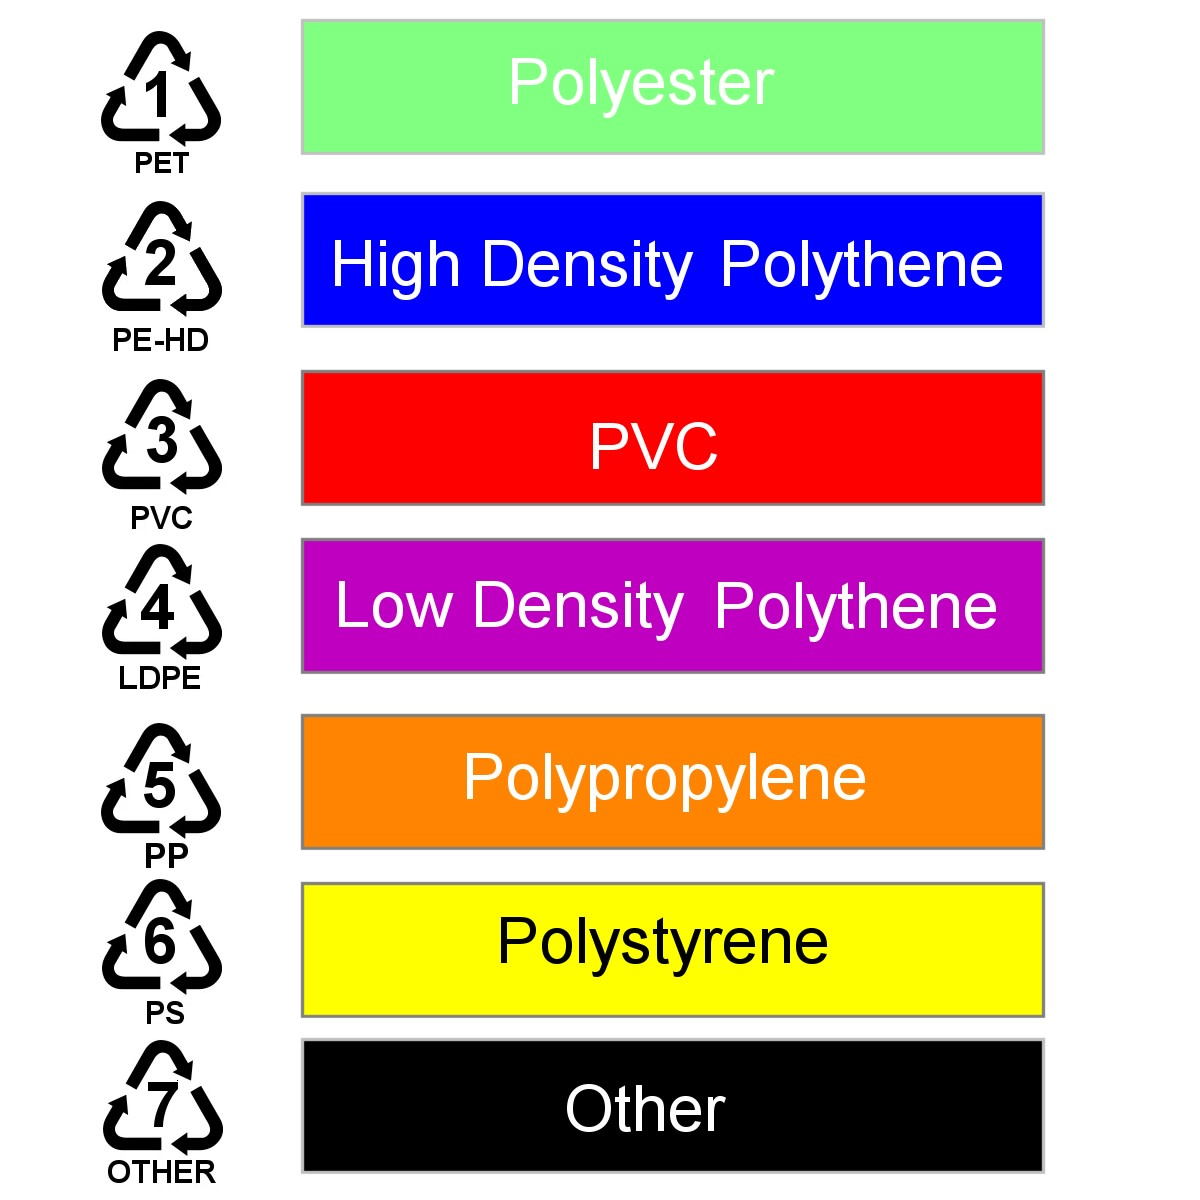 pvc-polypropylene-and-polyethylene-how-plastics-are-used-in-the-home